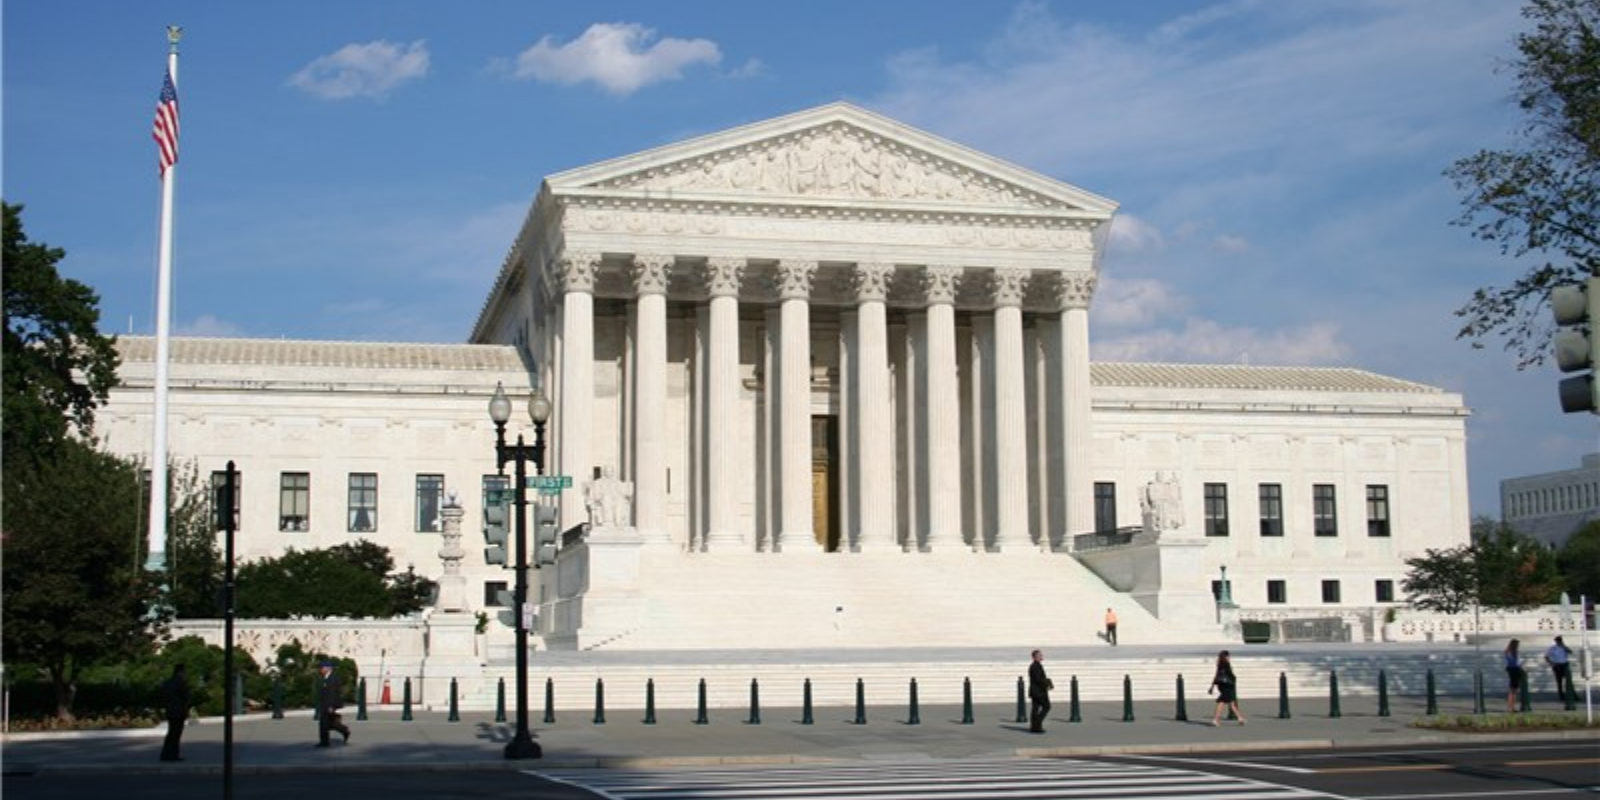 Supreme Court to hear case that could invalidate Obamacare